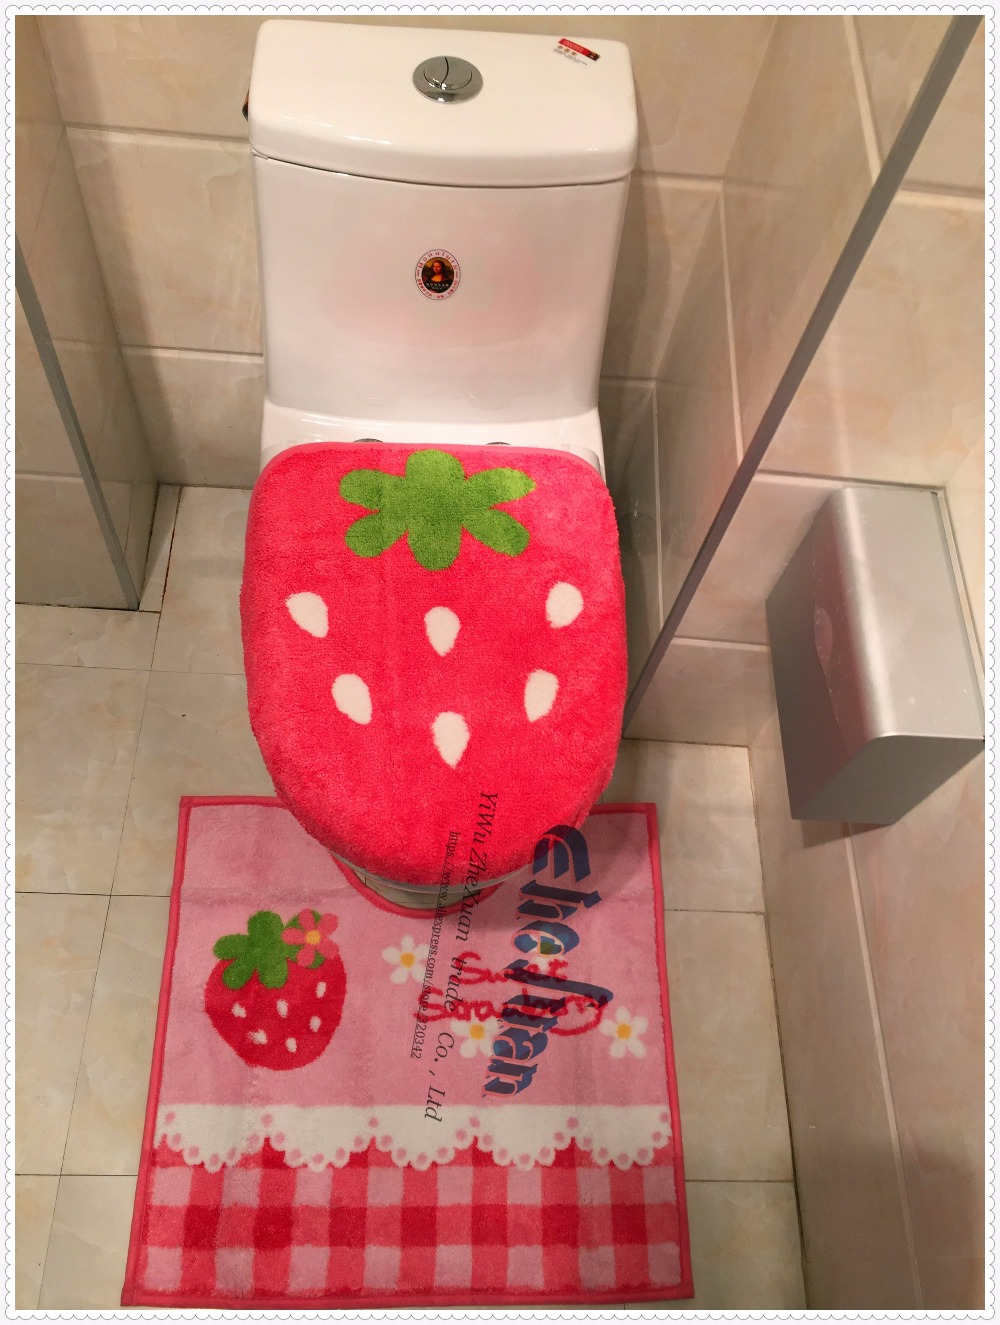 popular strawberry bathroom-buy cheap strawberry bathroom lots